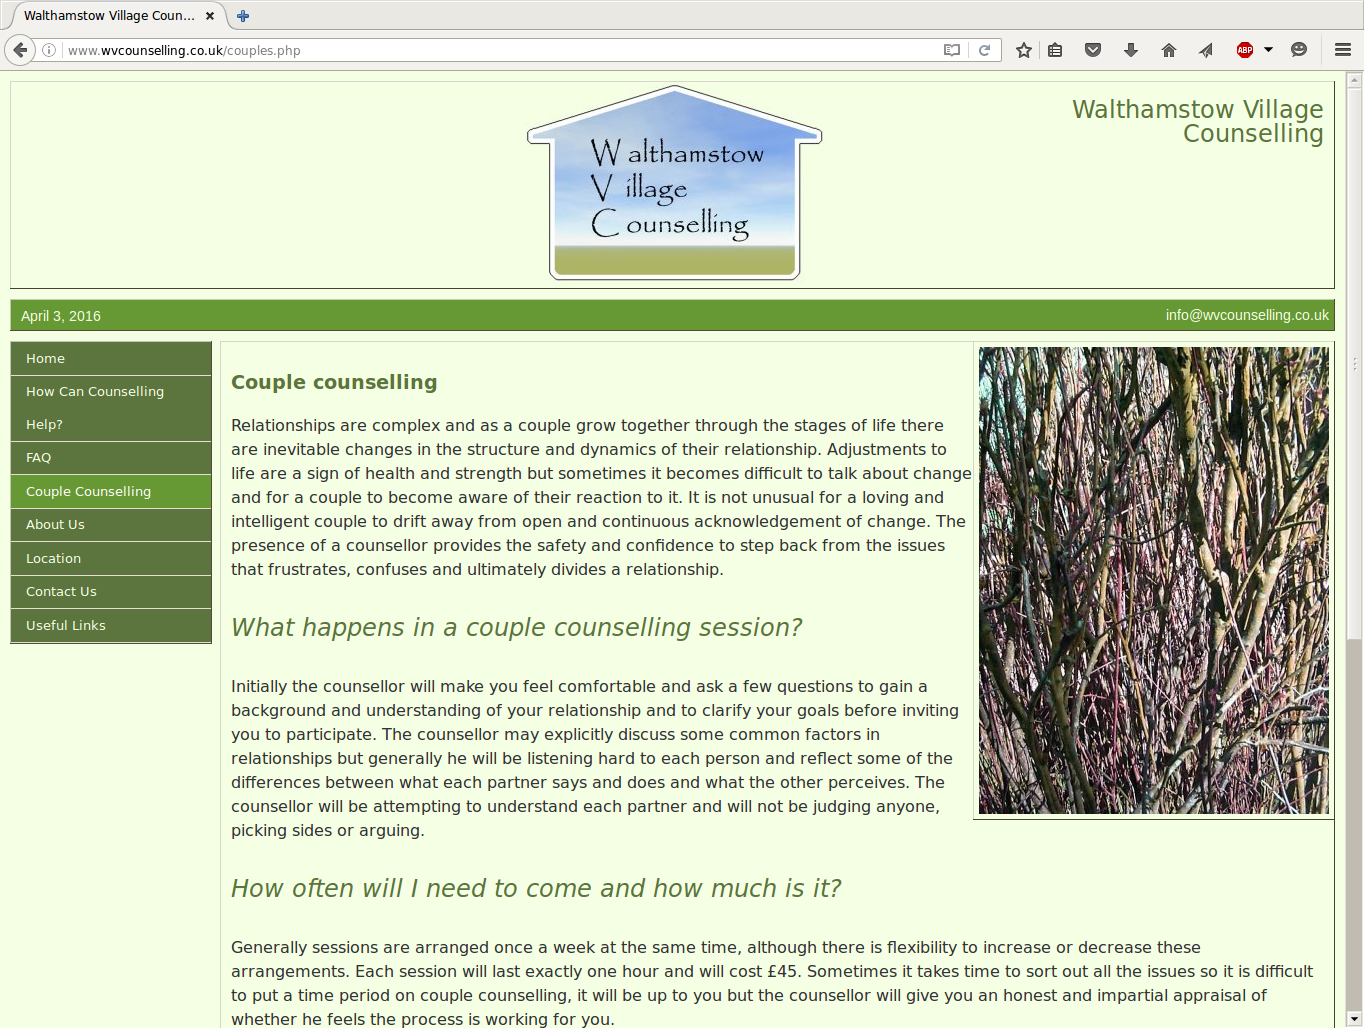 Screenshot-Walthamstow Village Counselling - Couple counselling - Mozilla Firefox